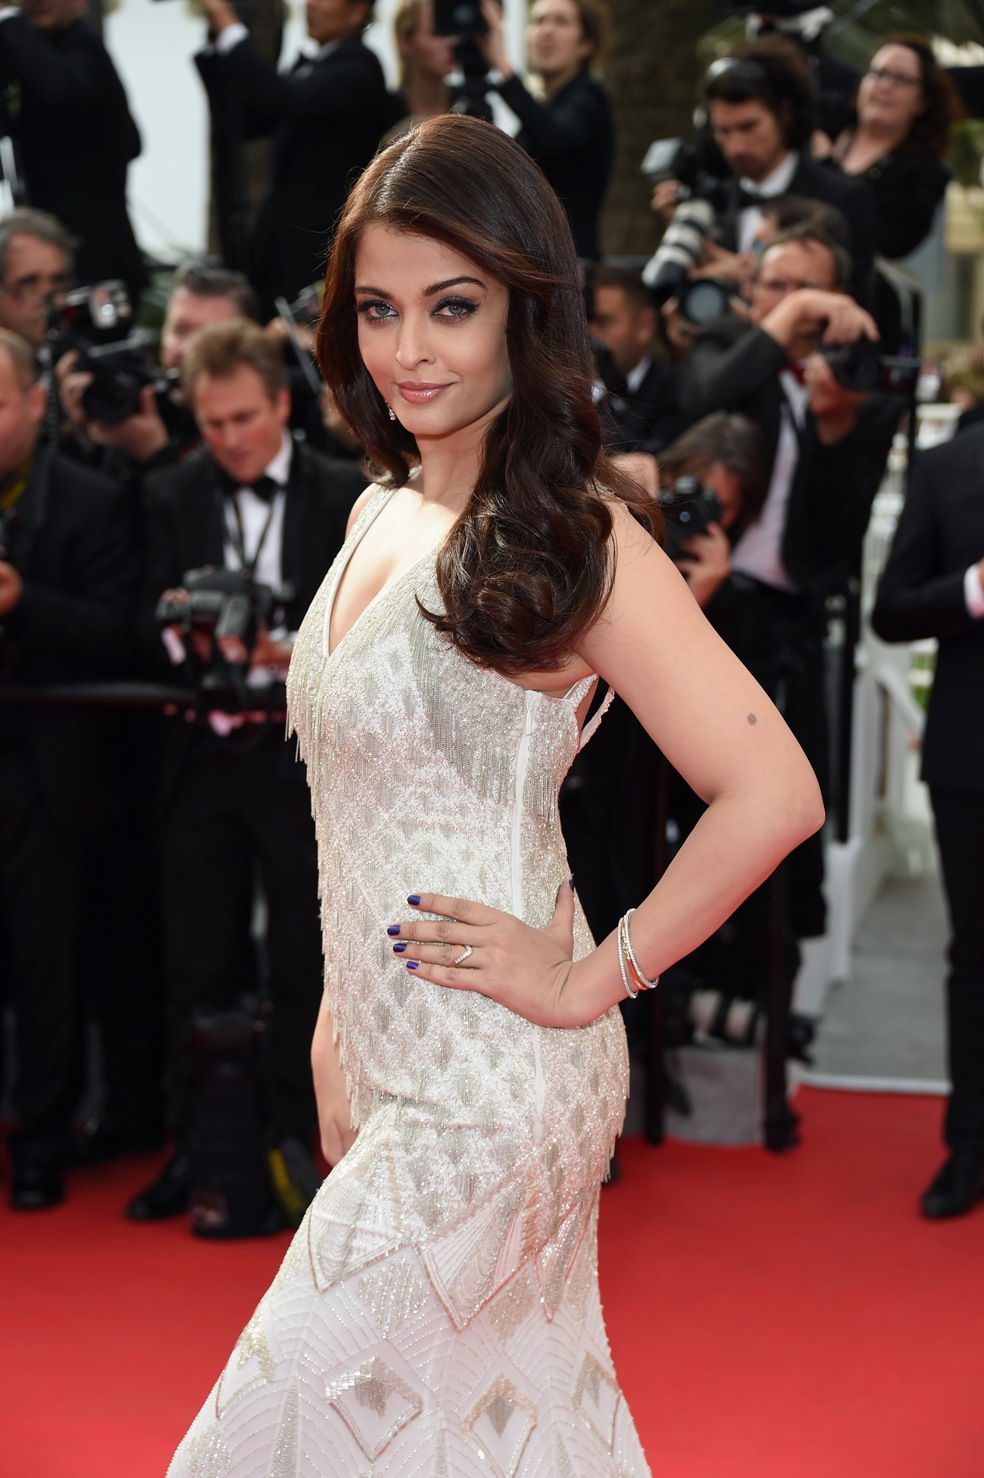 aishwarya-rai-at-cannes-film-festival-2014- (46)